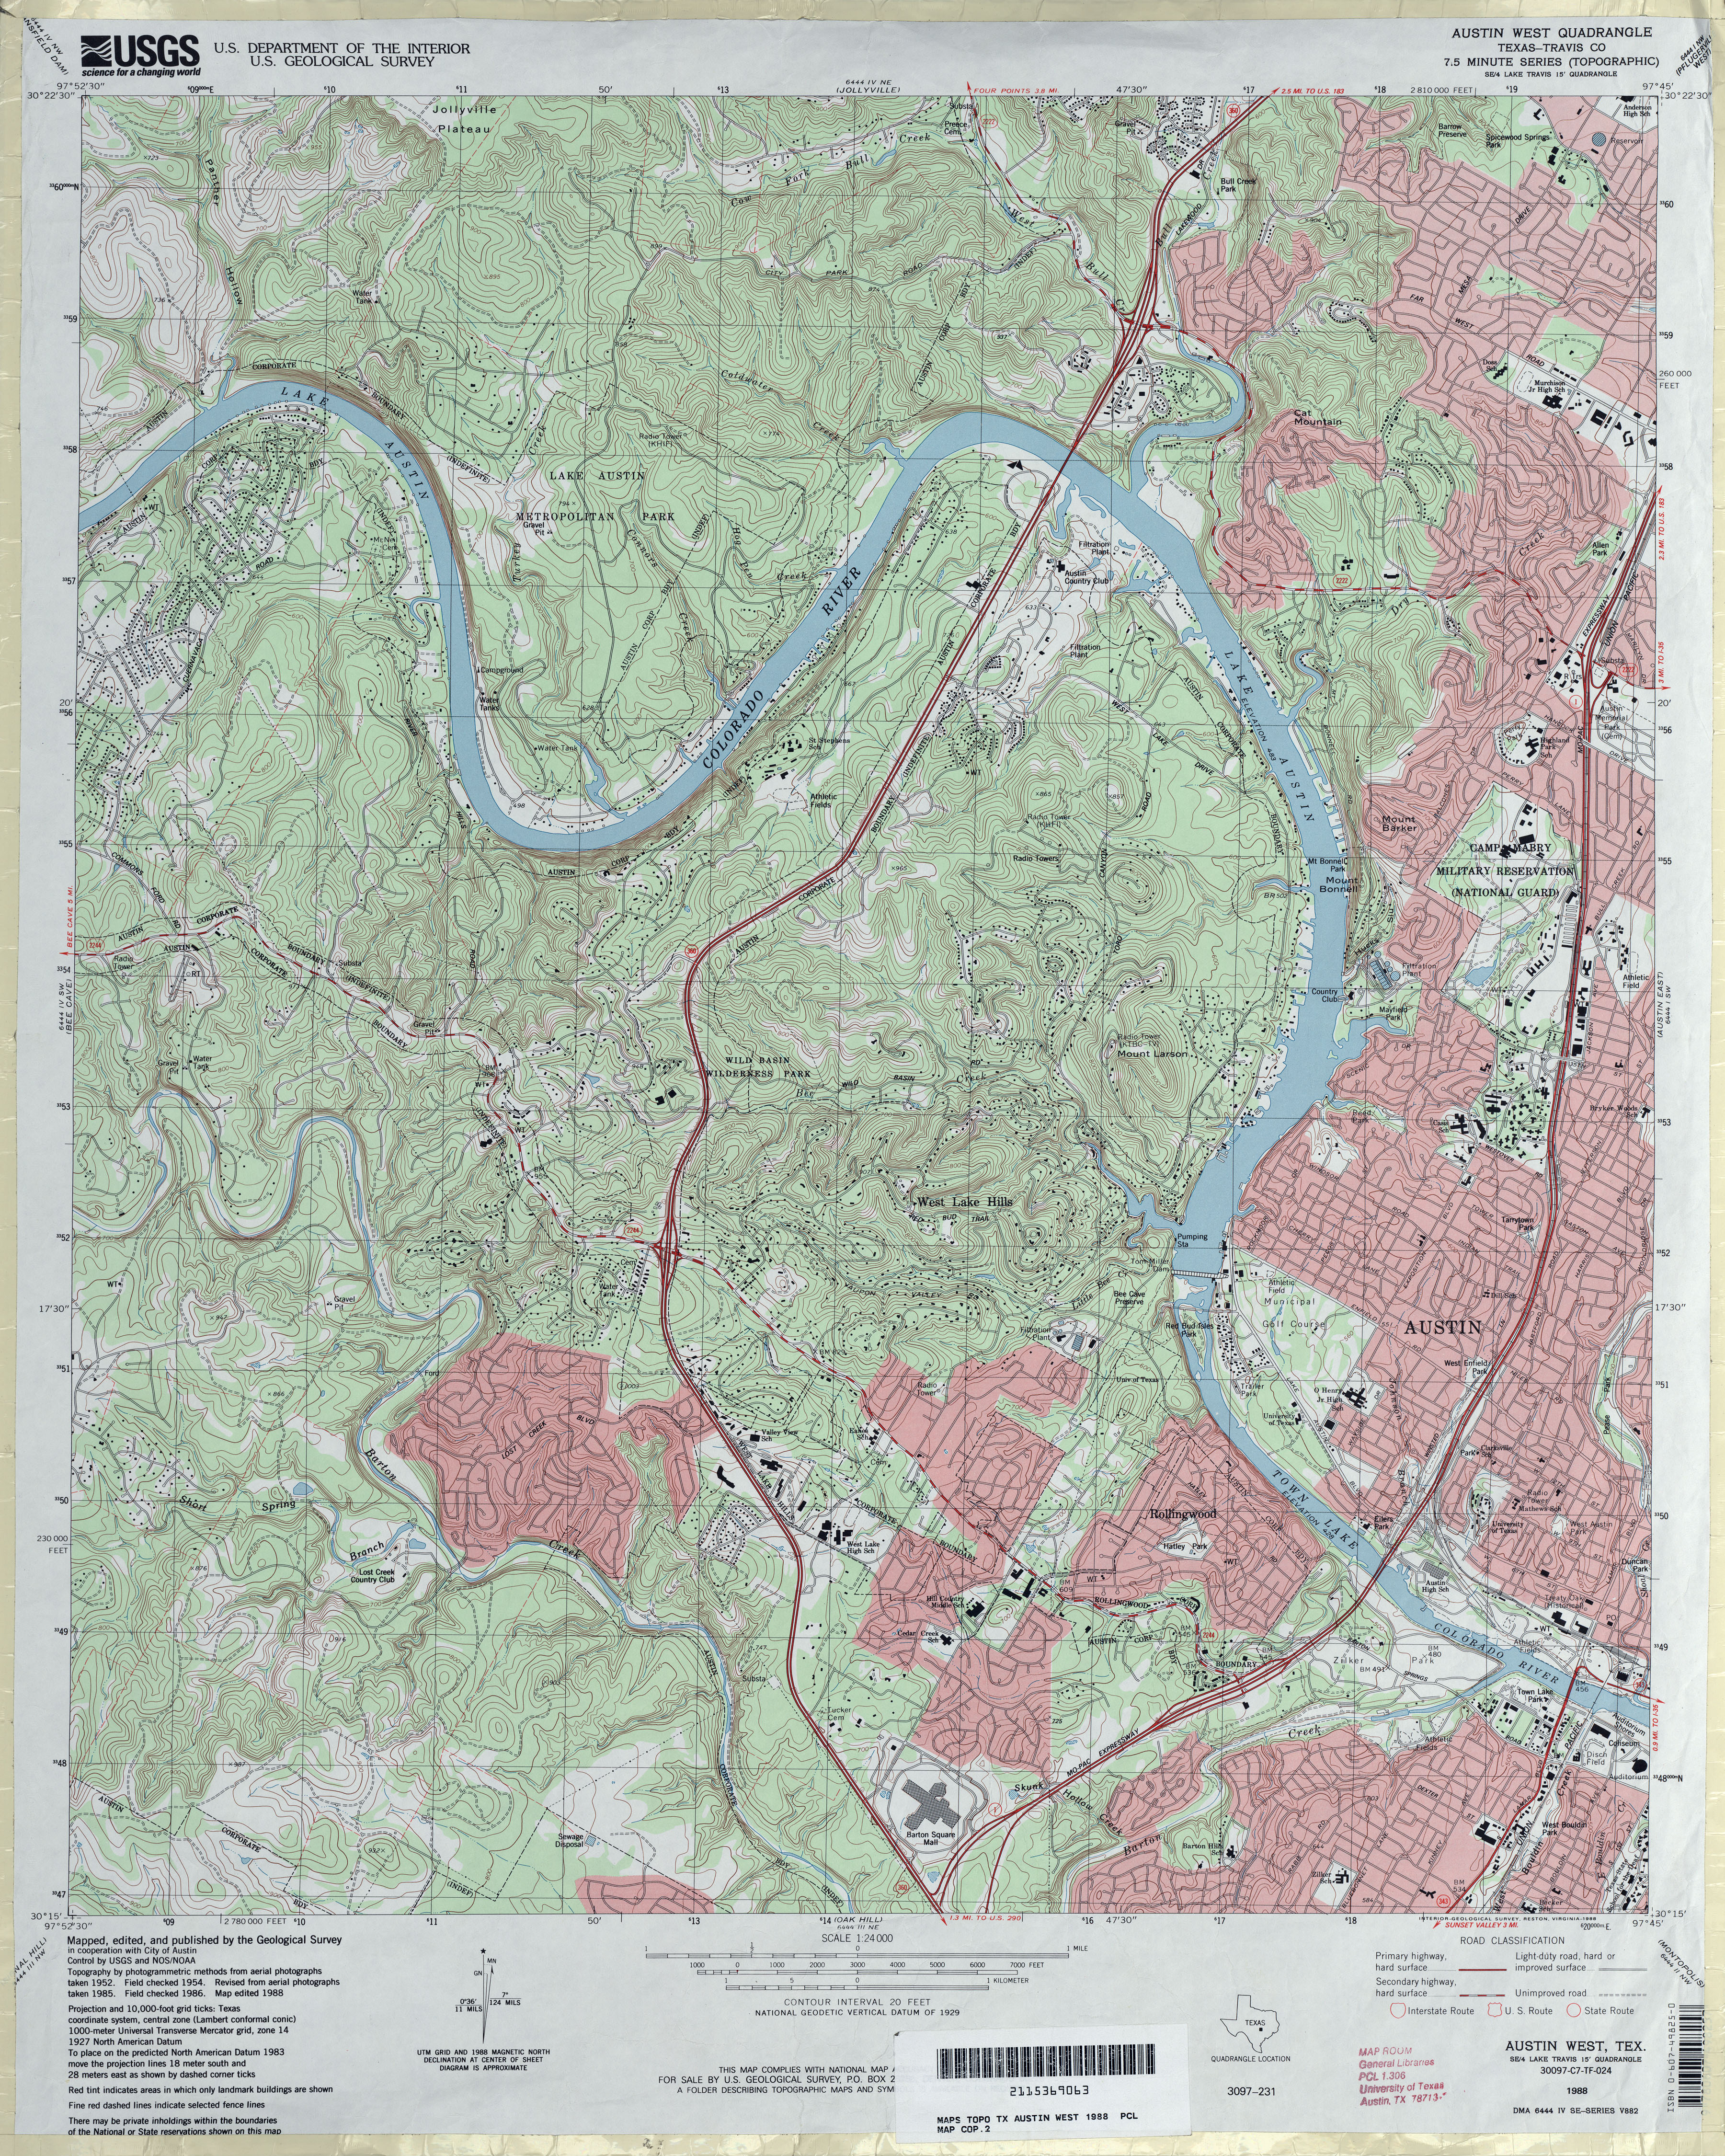 Austin, Texas Topographic Maps - Perry-Castañeda Map Collection ...